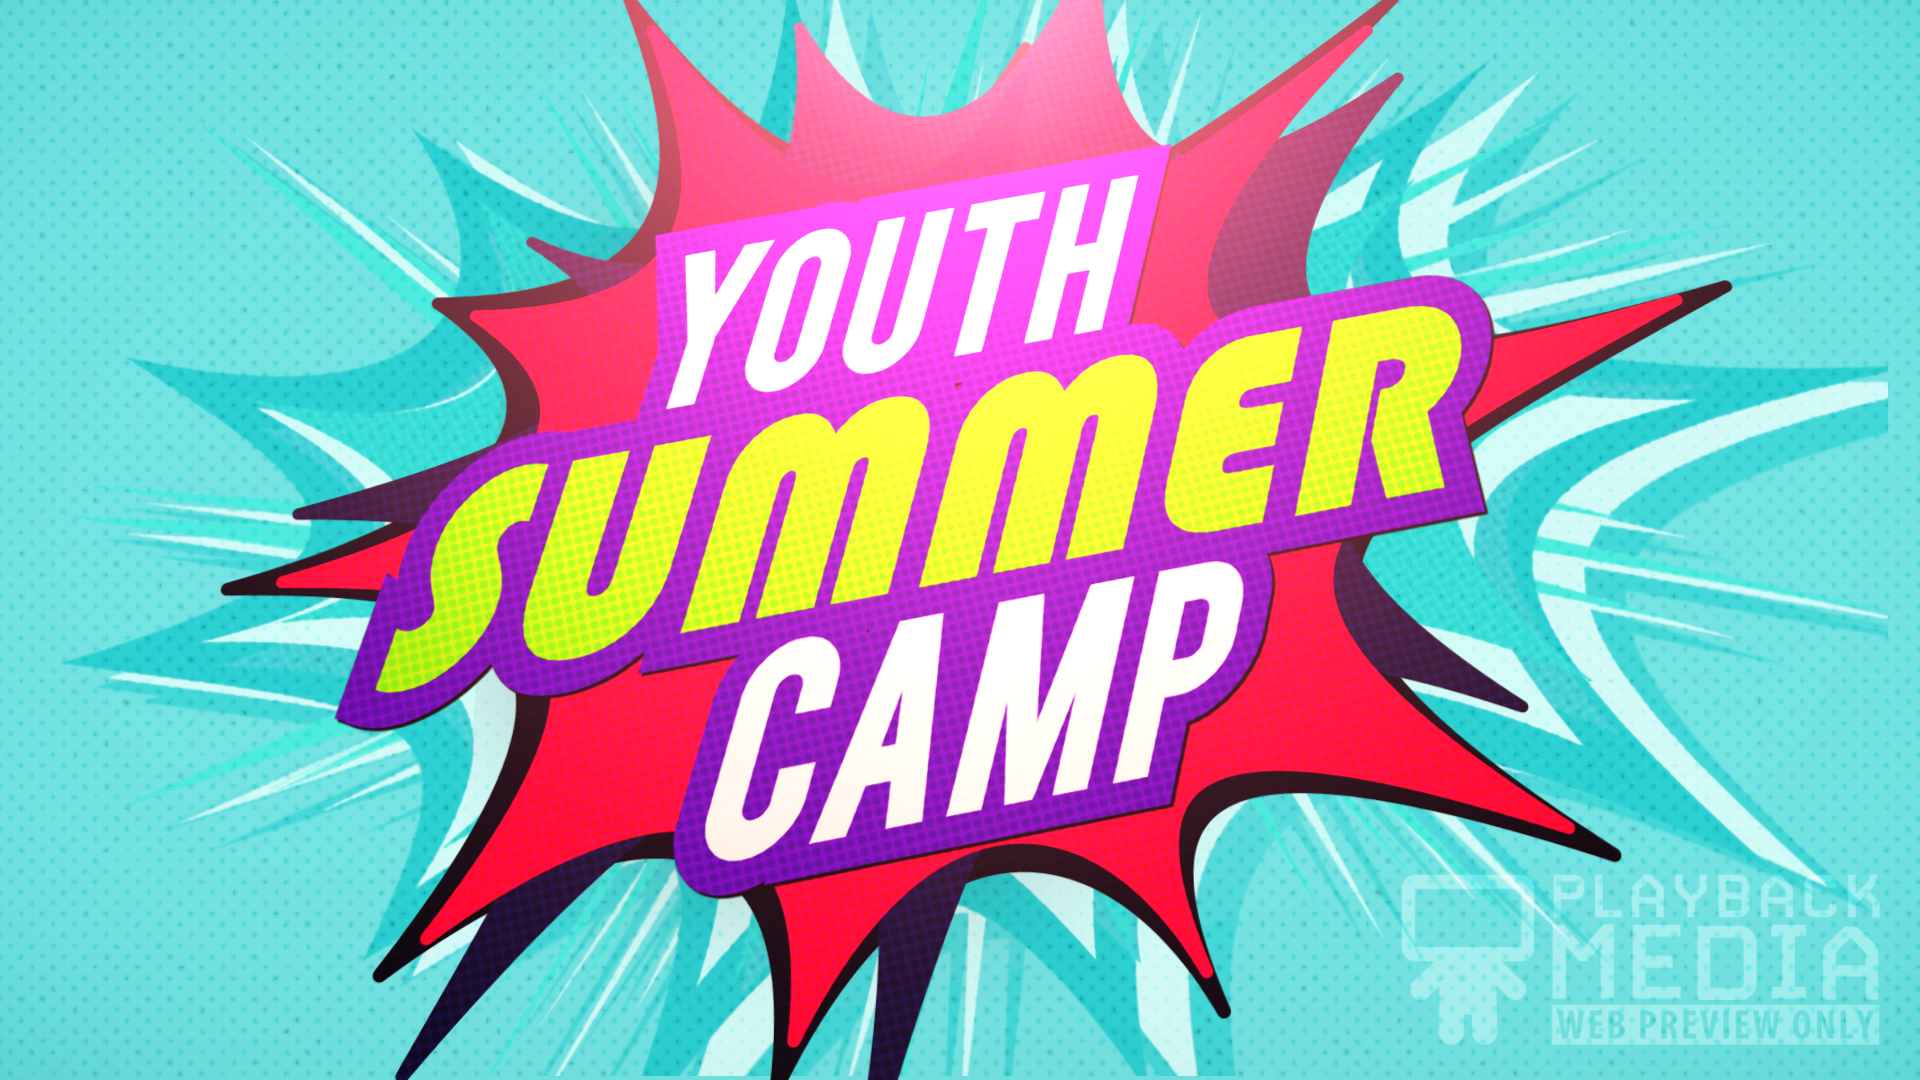 Bible Heroes Youth Summer Camp Motion Image